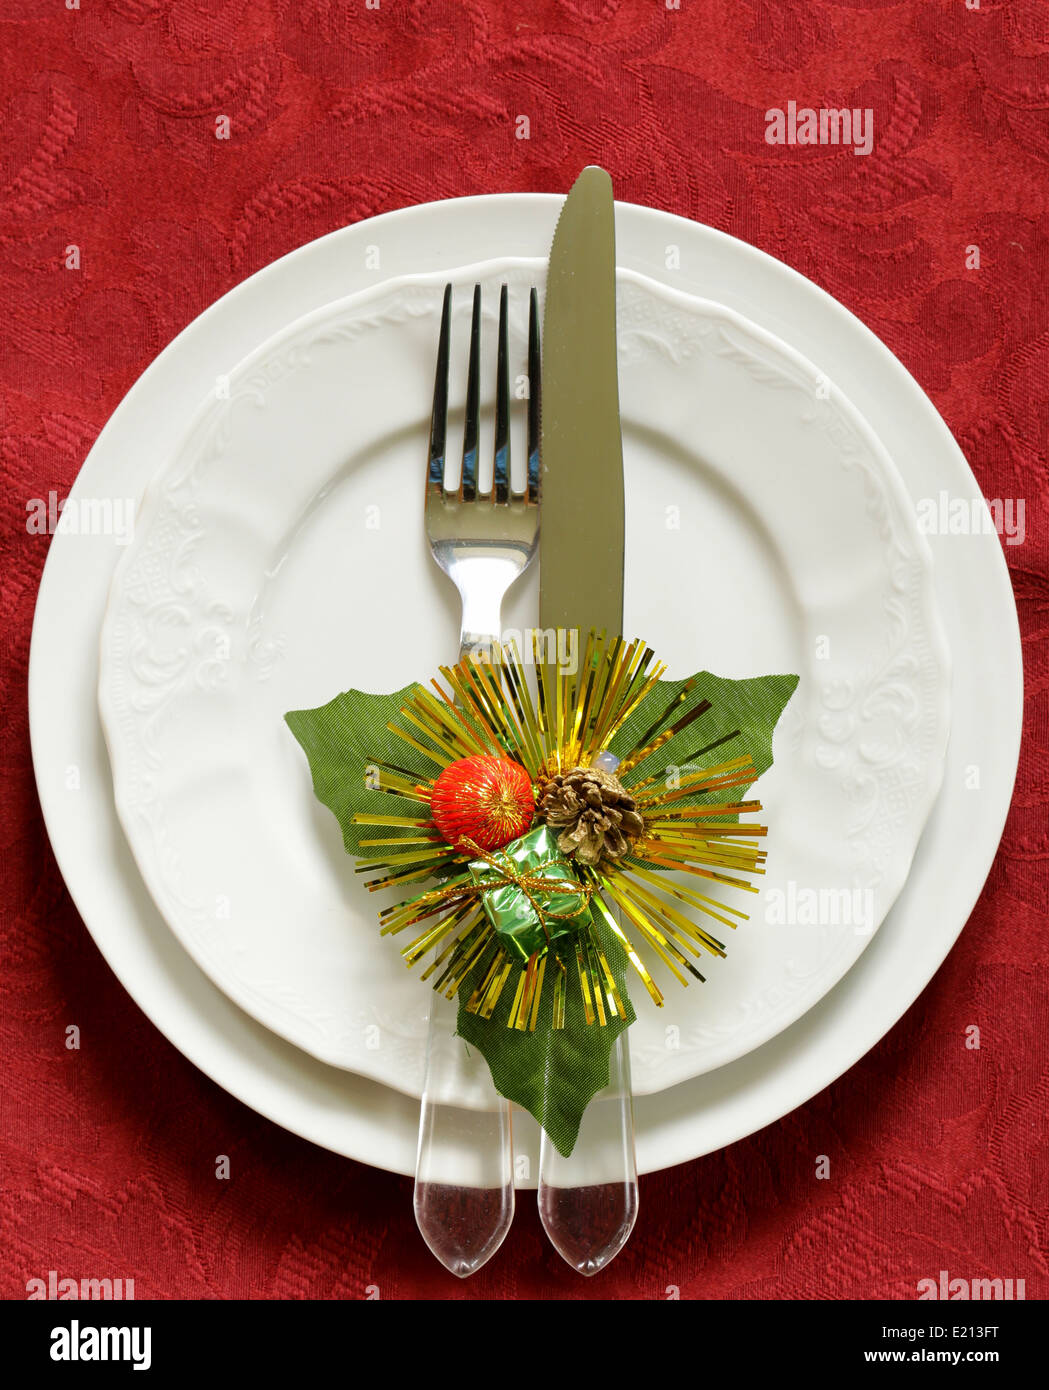 Christmas table setting (white plates on a red background) - Stock Image